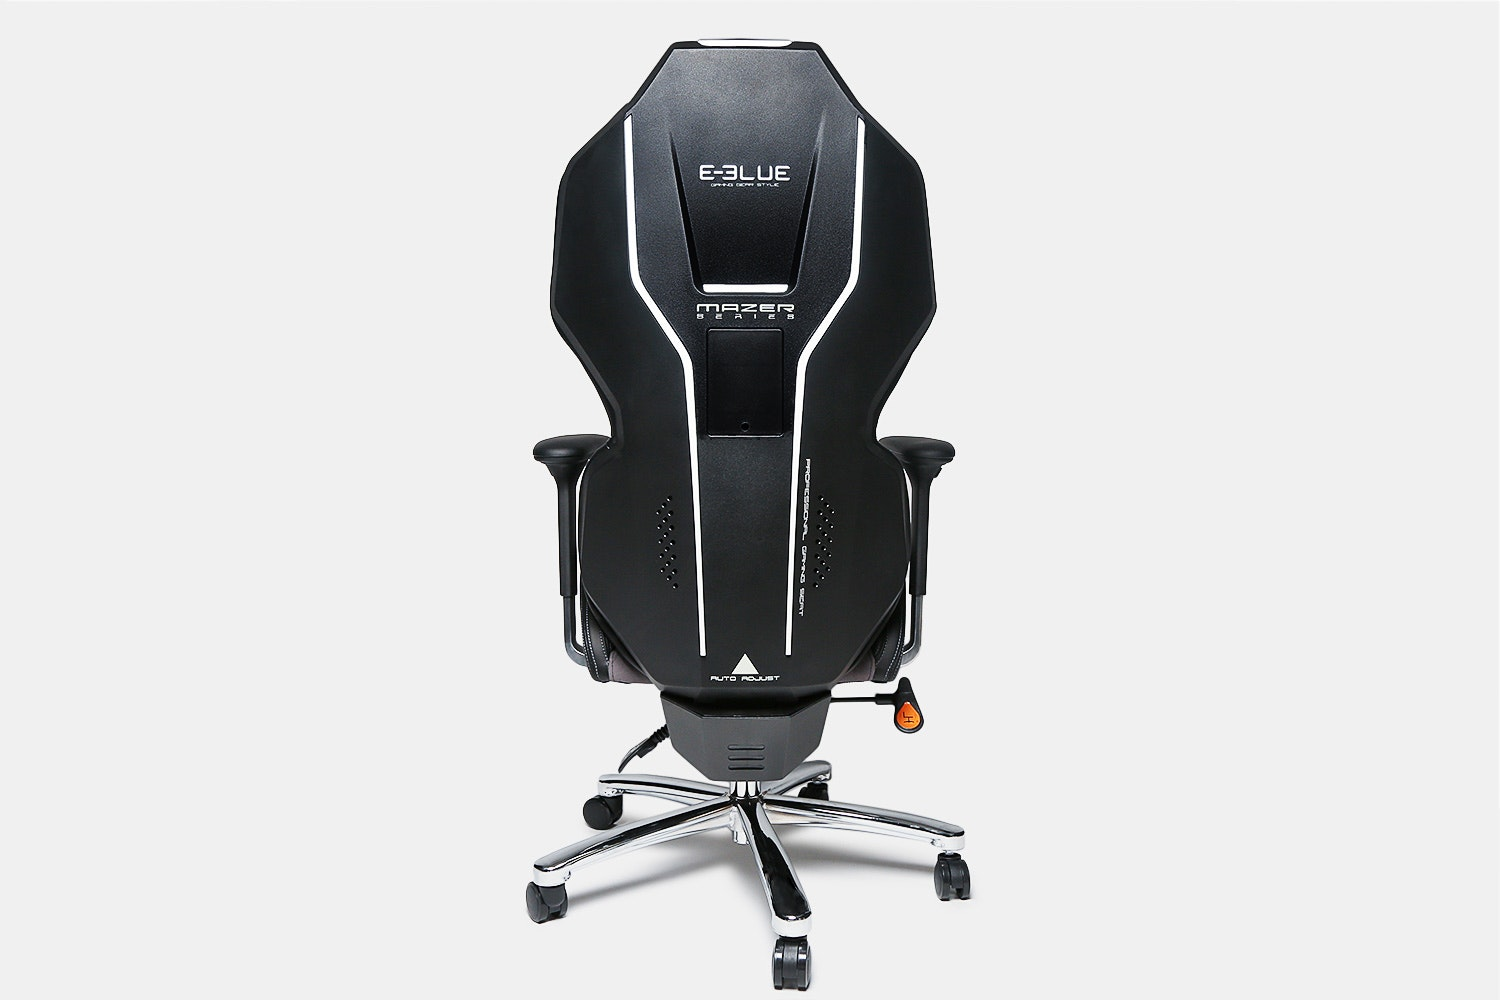 E-Blue Mazer Gaming Chair (Special Edition)